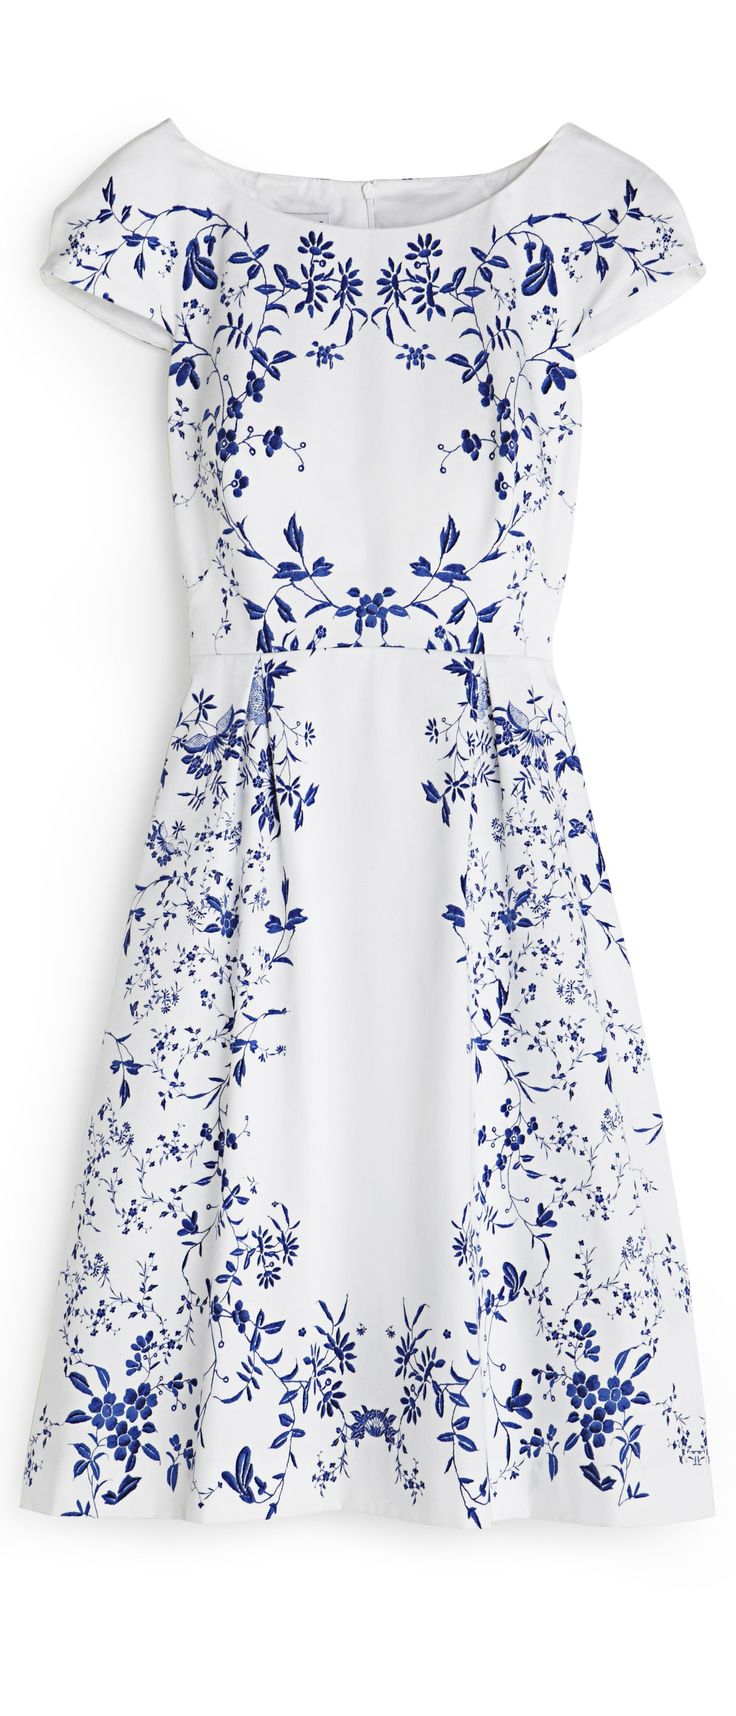 Delicate summer dress -- white with dark blue pattern